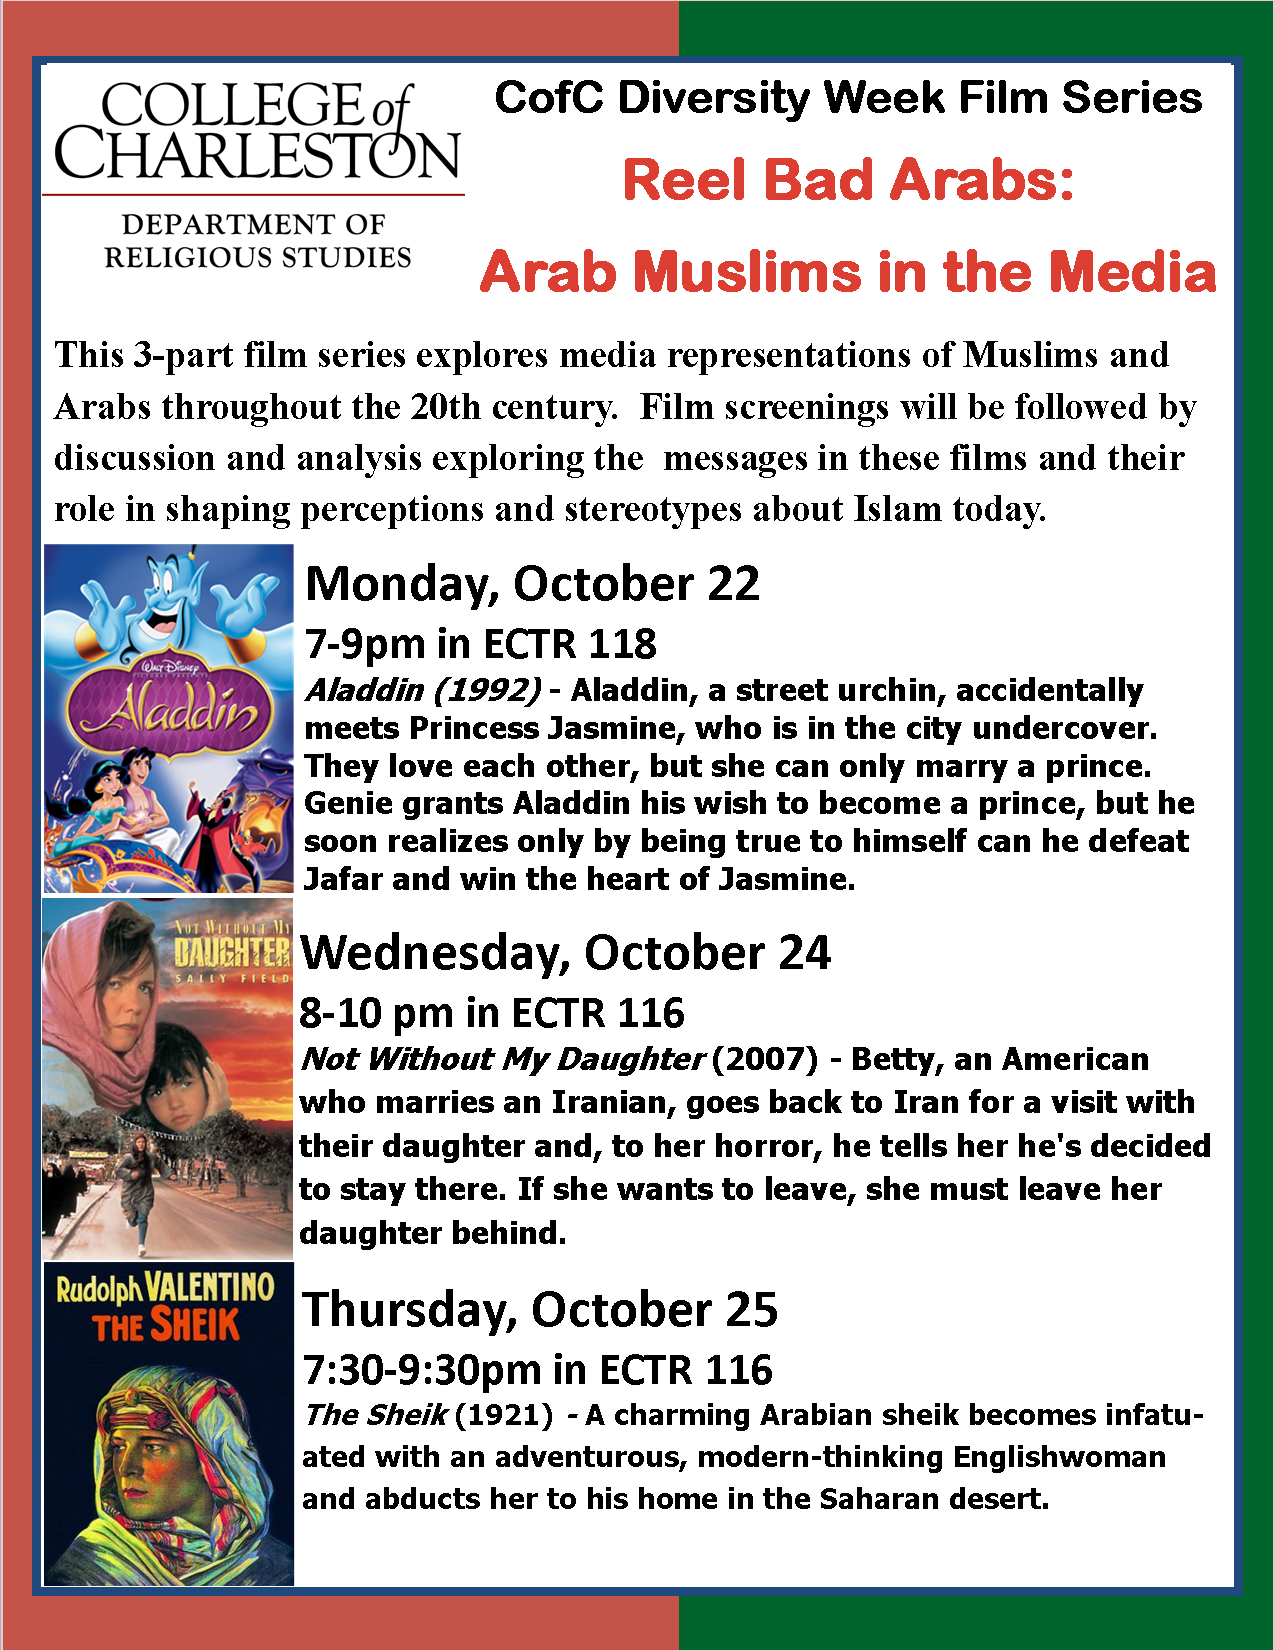 Reel Bad Arabs: Arab Muslims in the Media